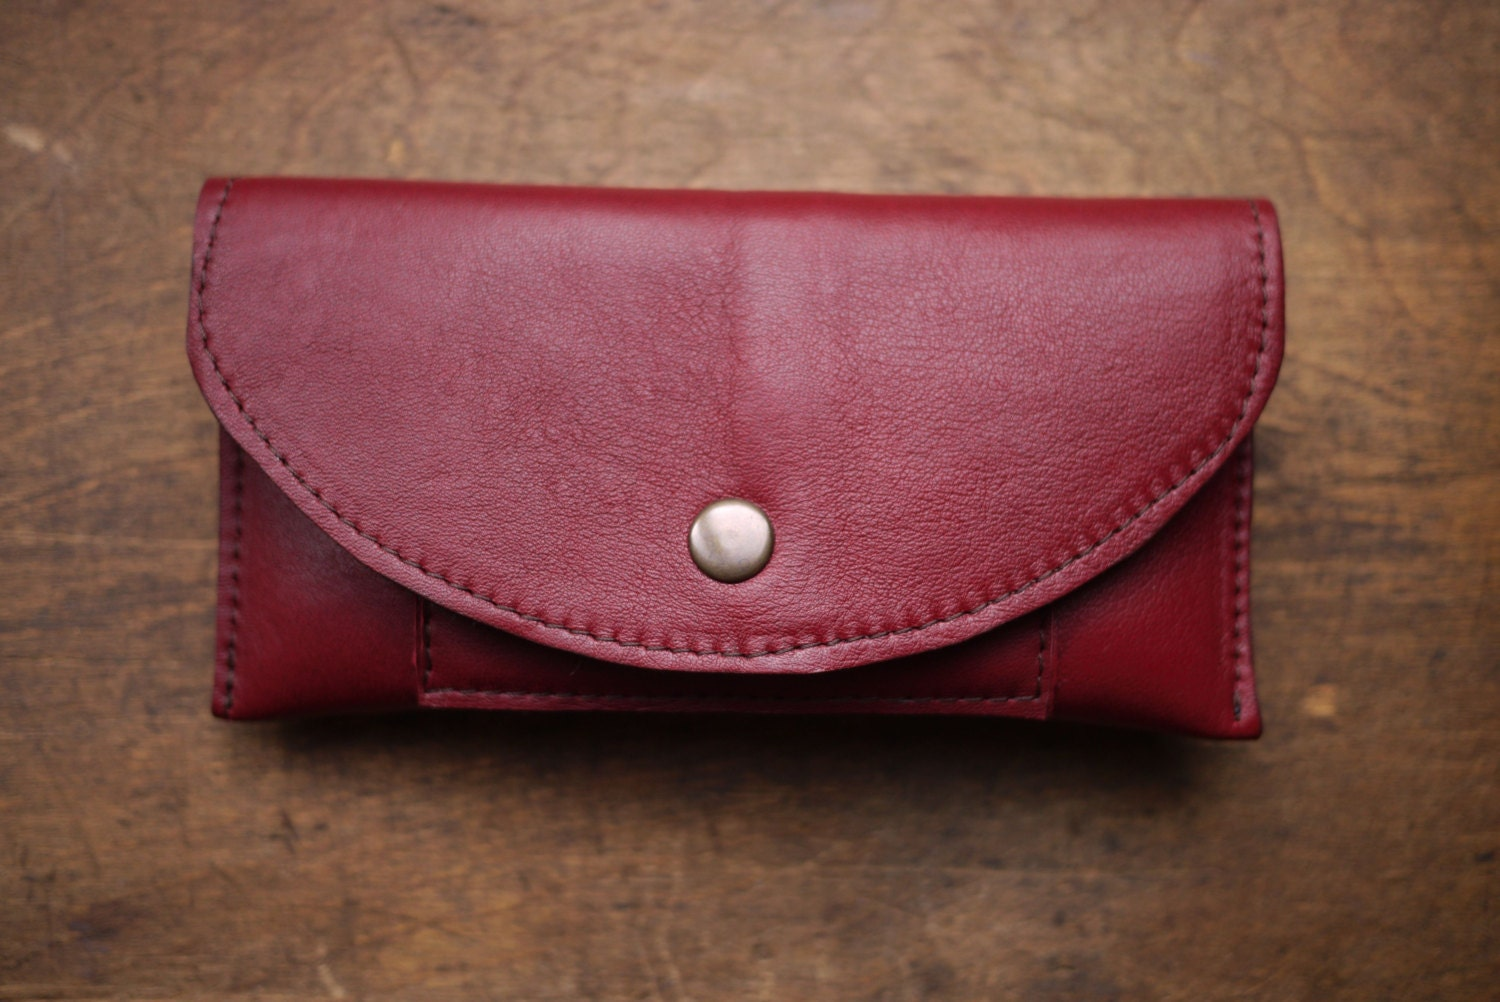 OOAK UPCYCLED Dark Cherry Red Leather Tobacco Pouch